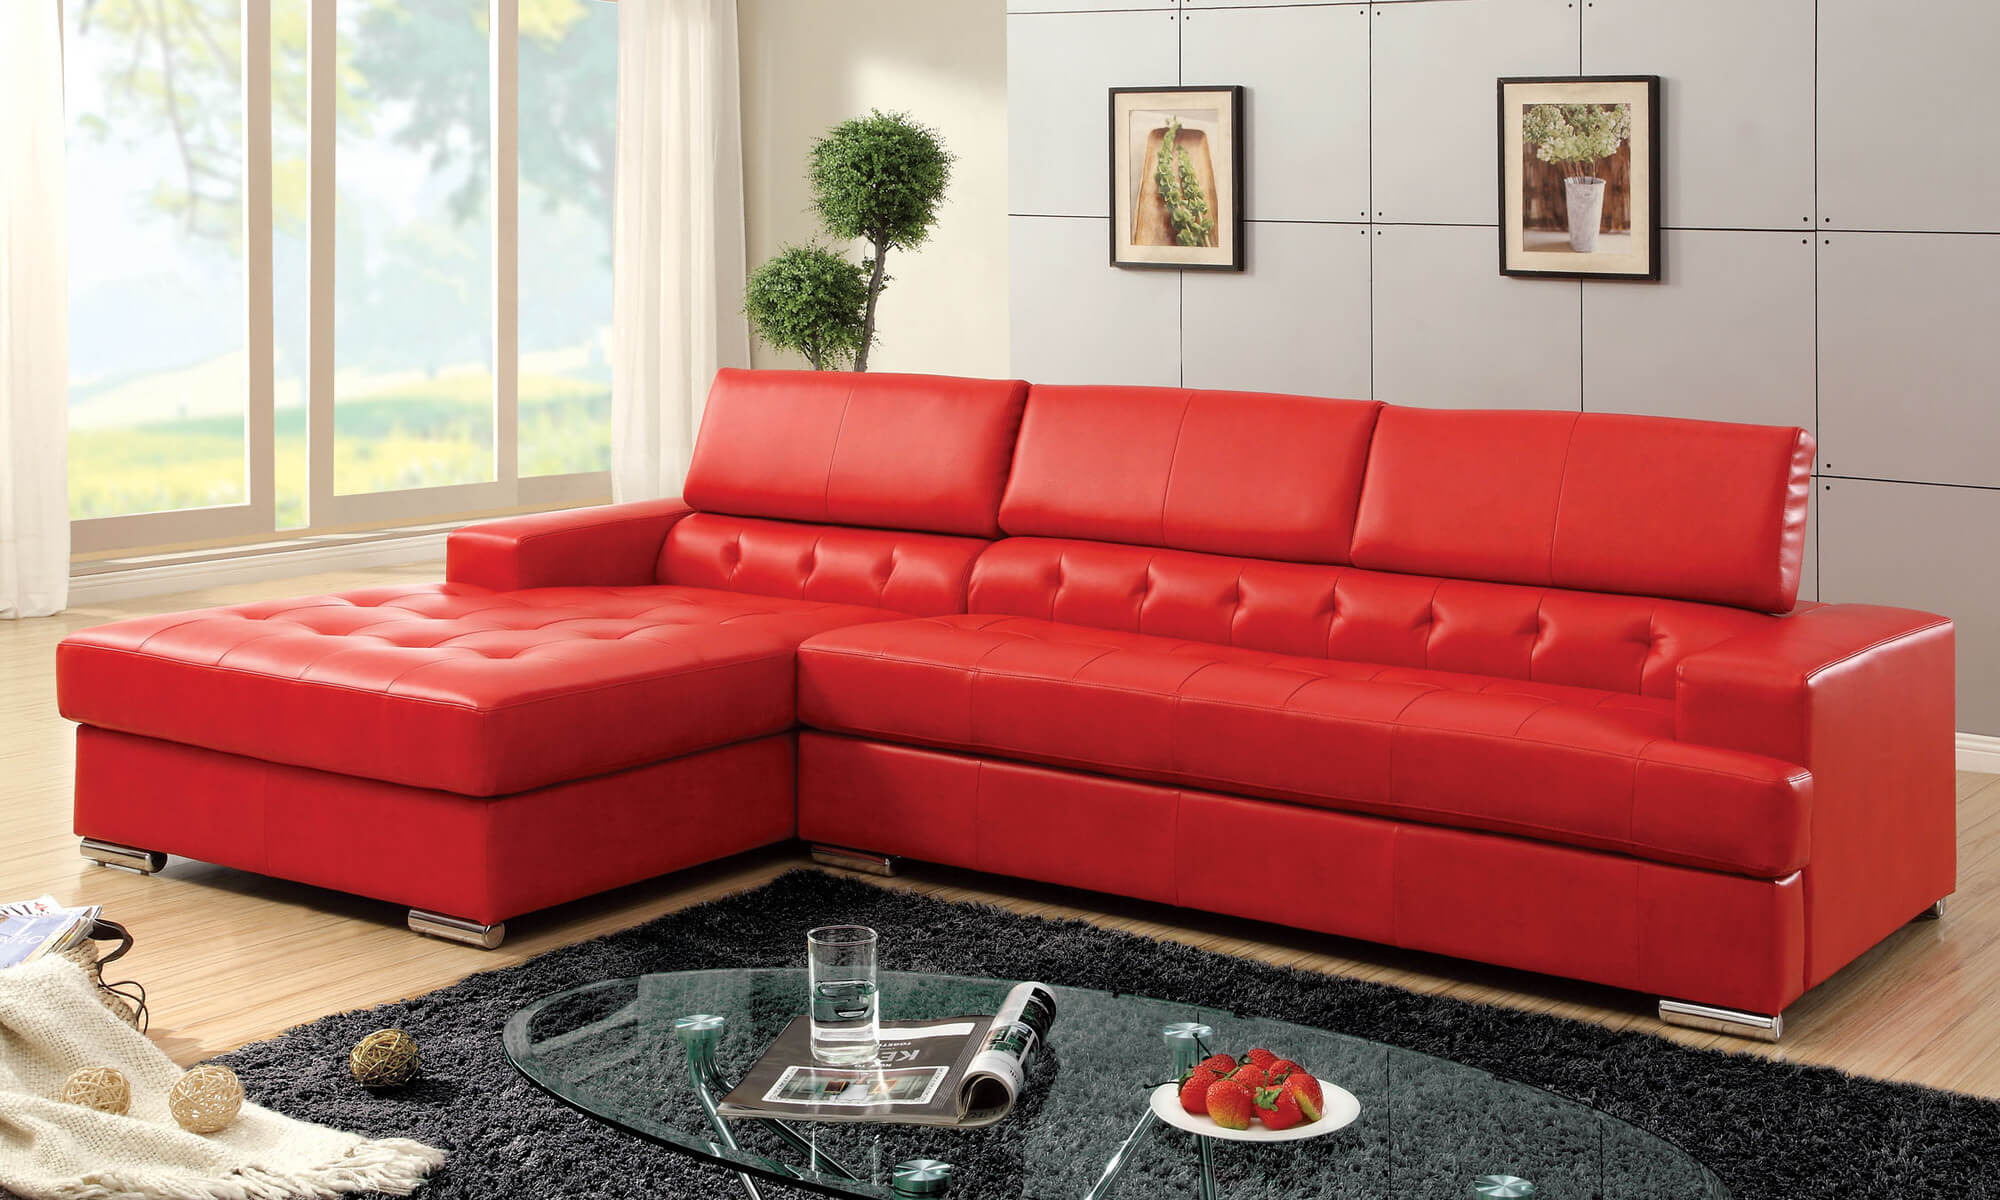 18 stylish modern red sectional sofas Red sofa ideas